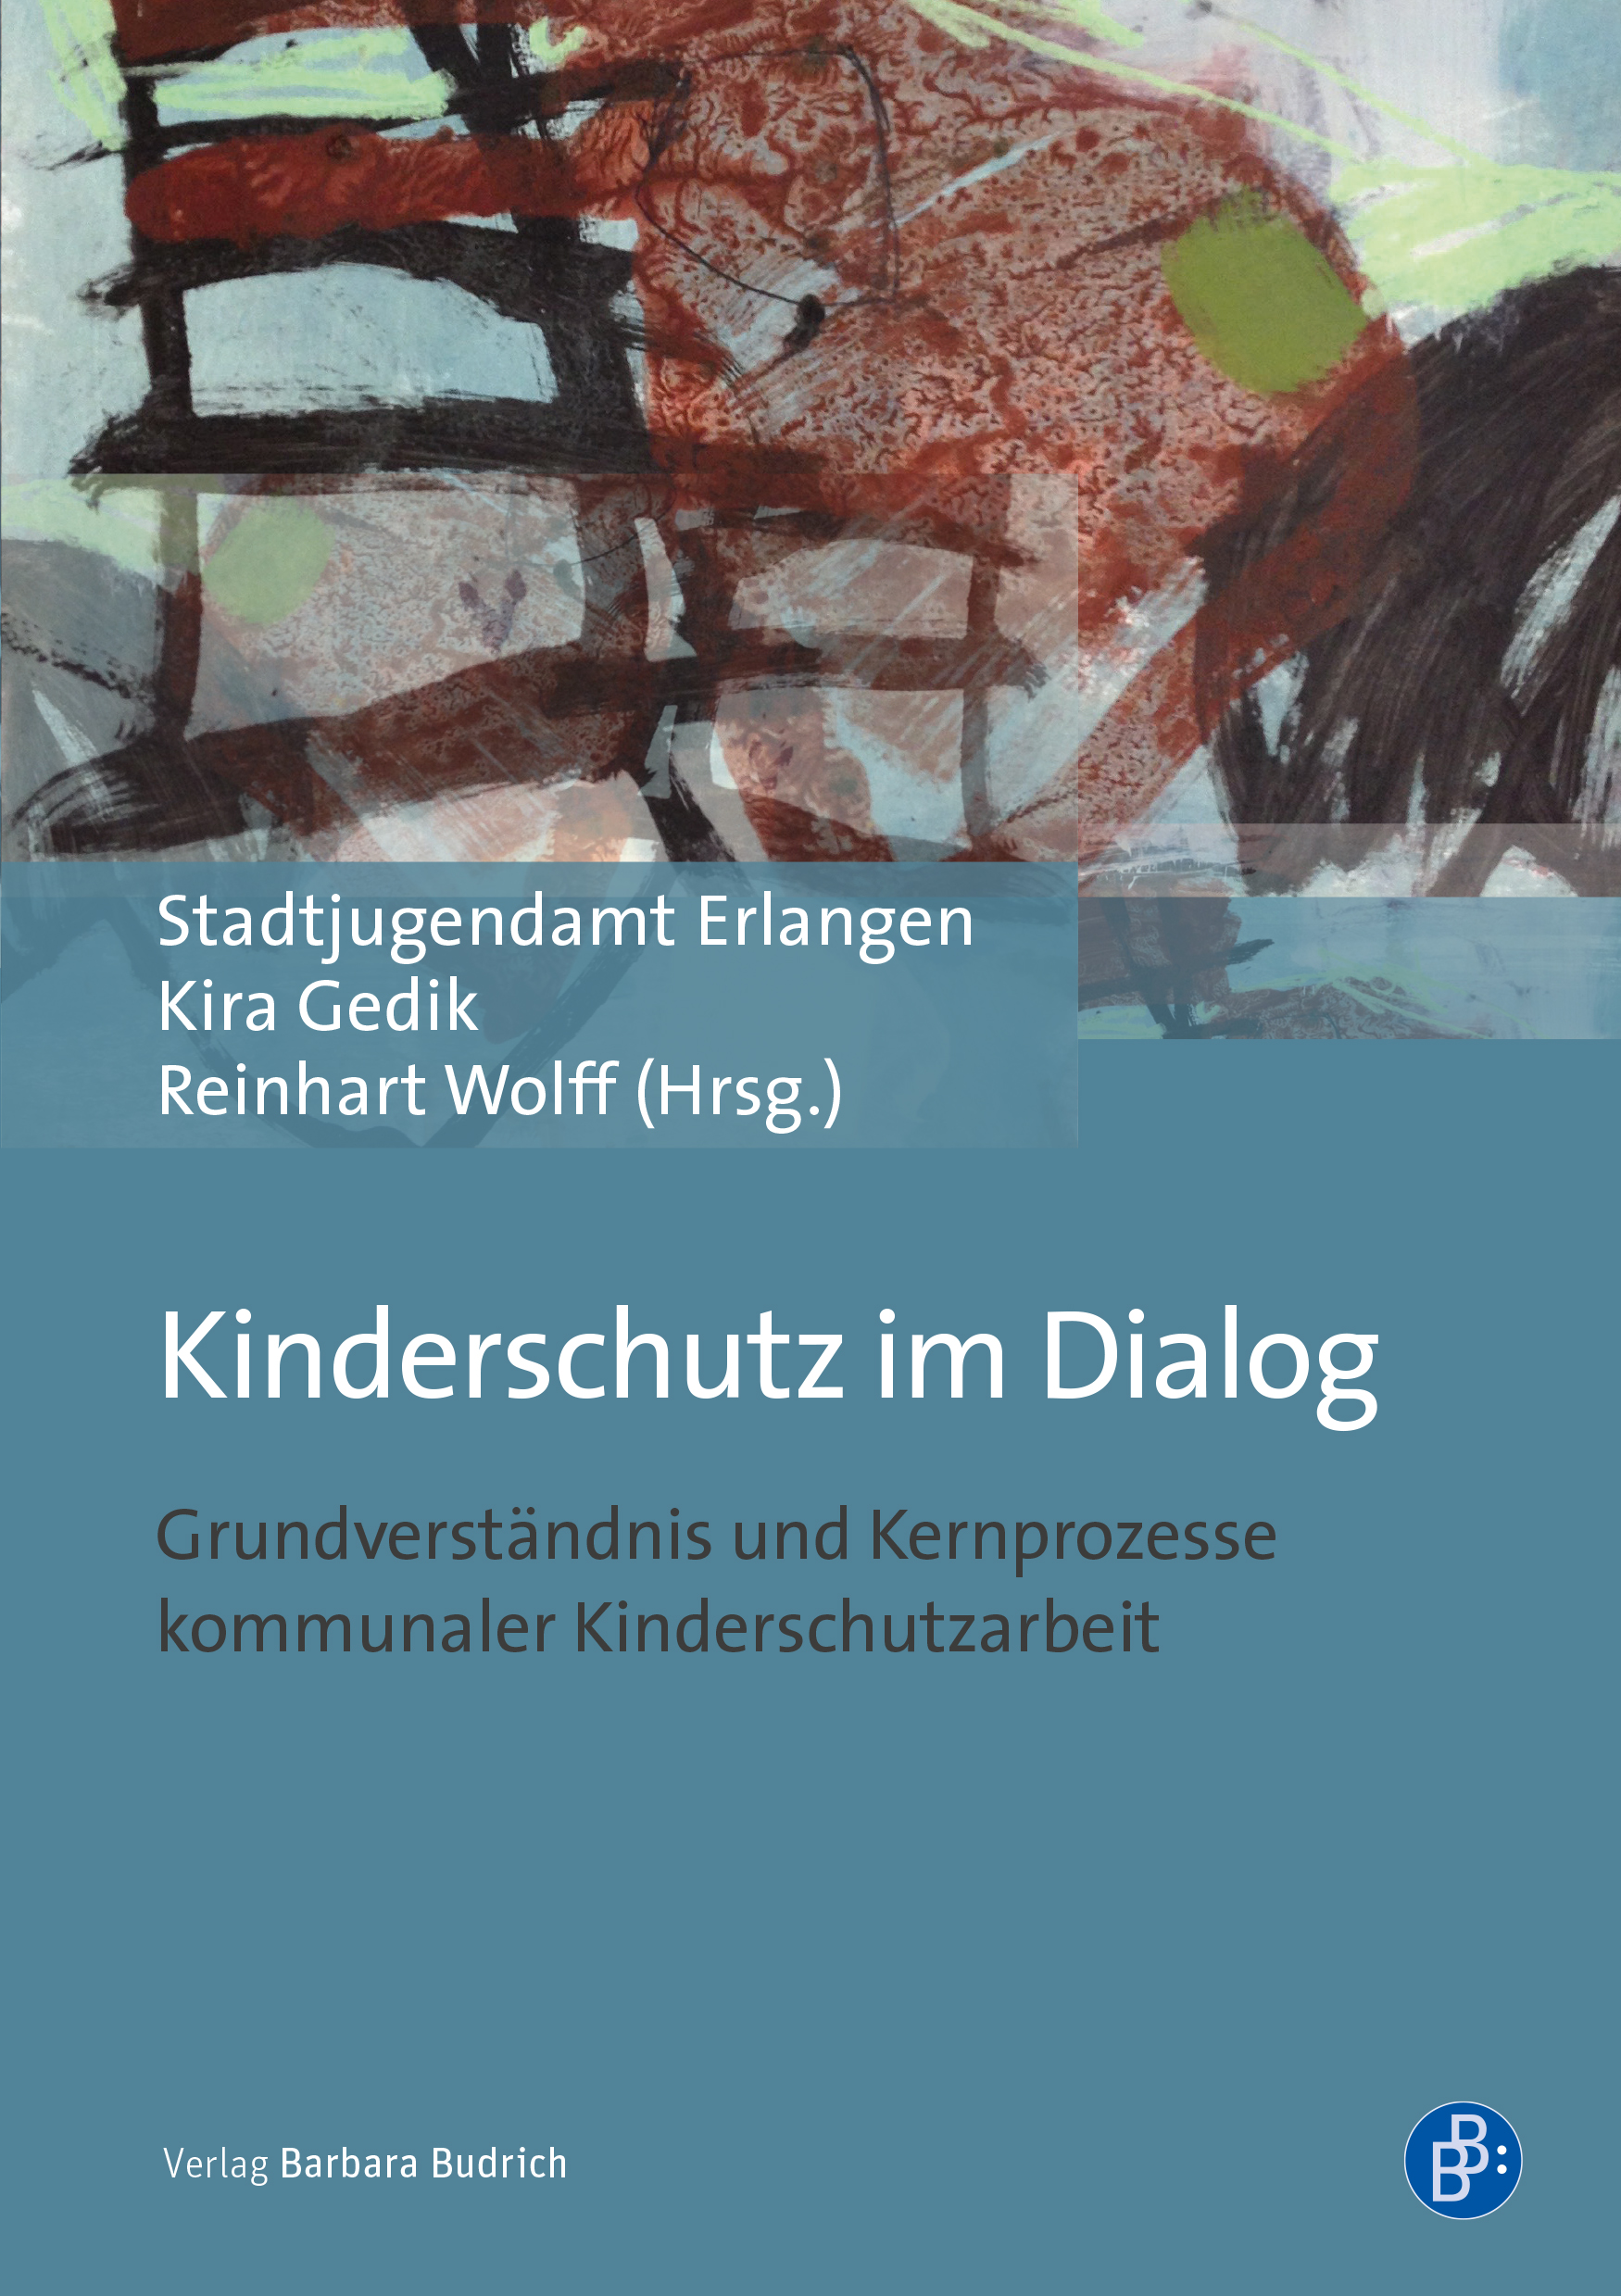 files/cms/downloads/Kinderschutz%20im%20Dialog.jpg